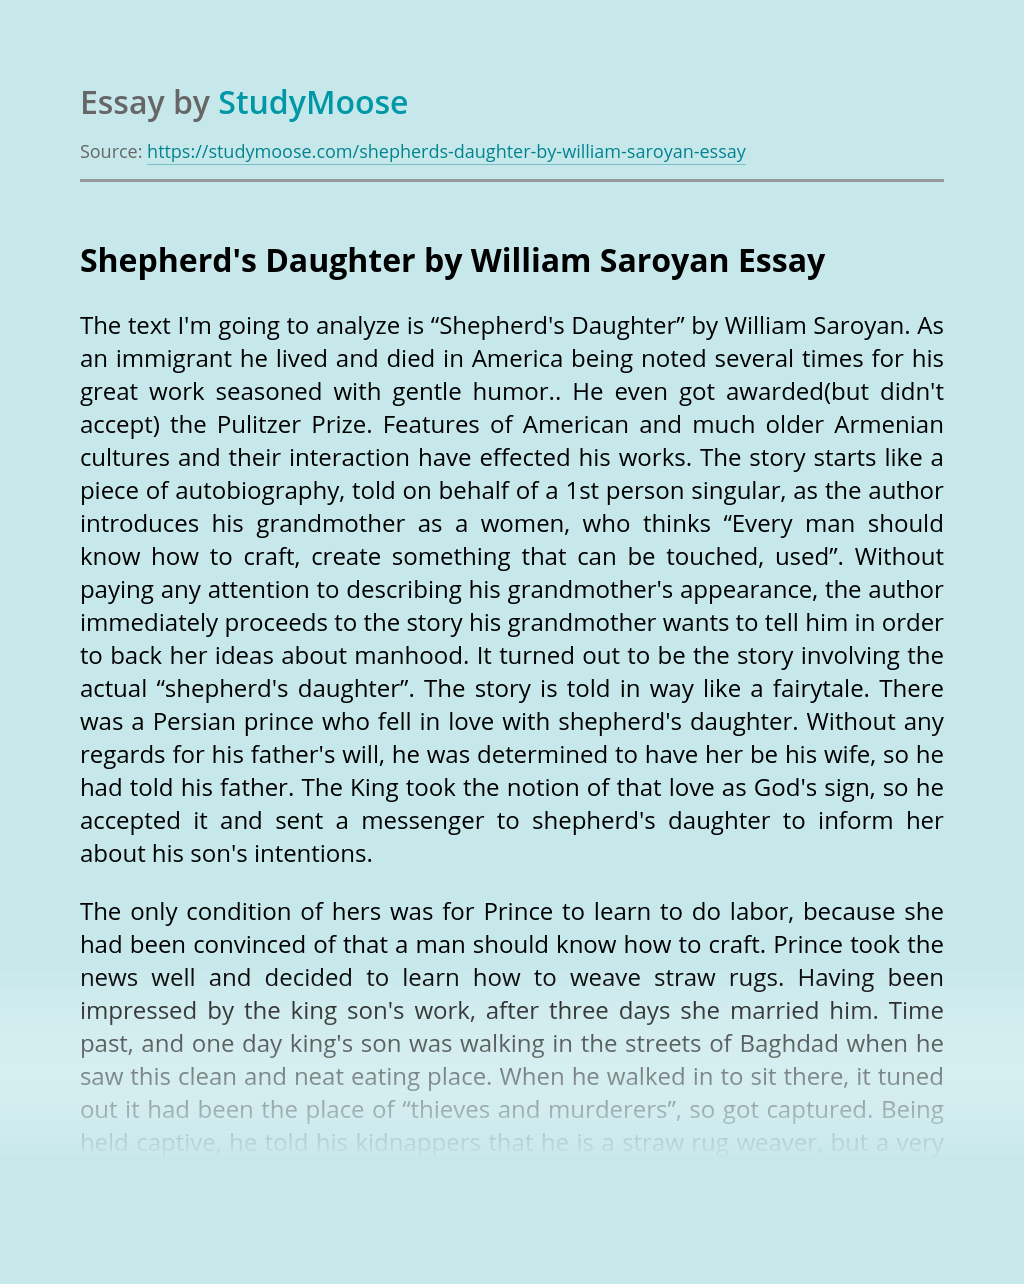 Shepherd's Daughter by William Saroyan